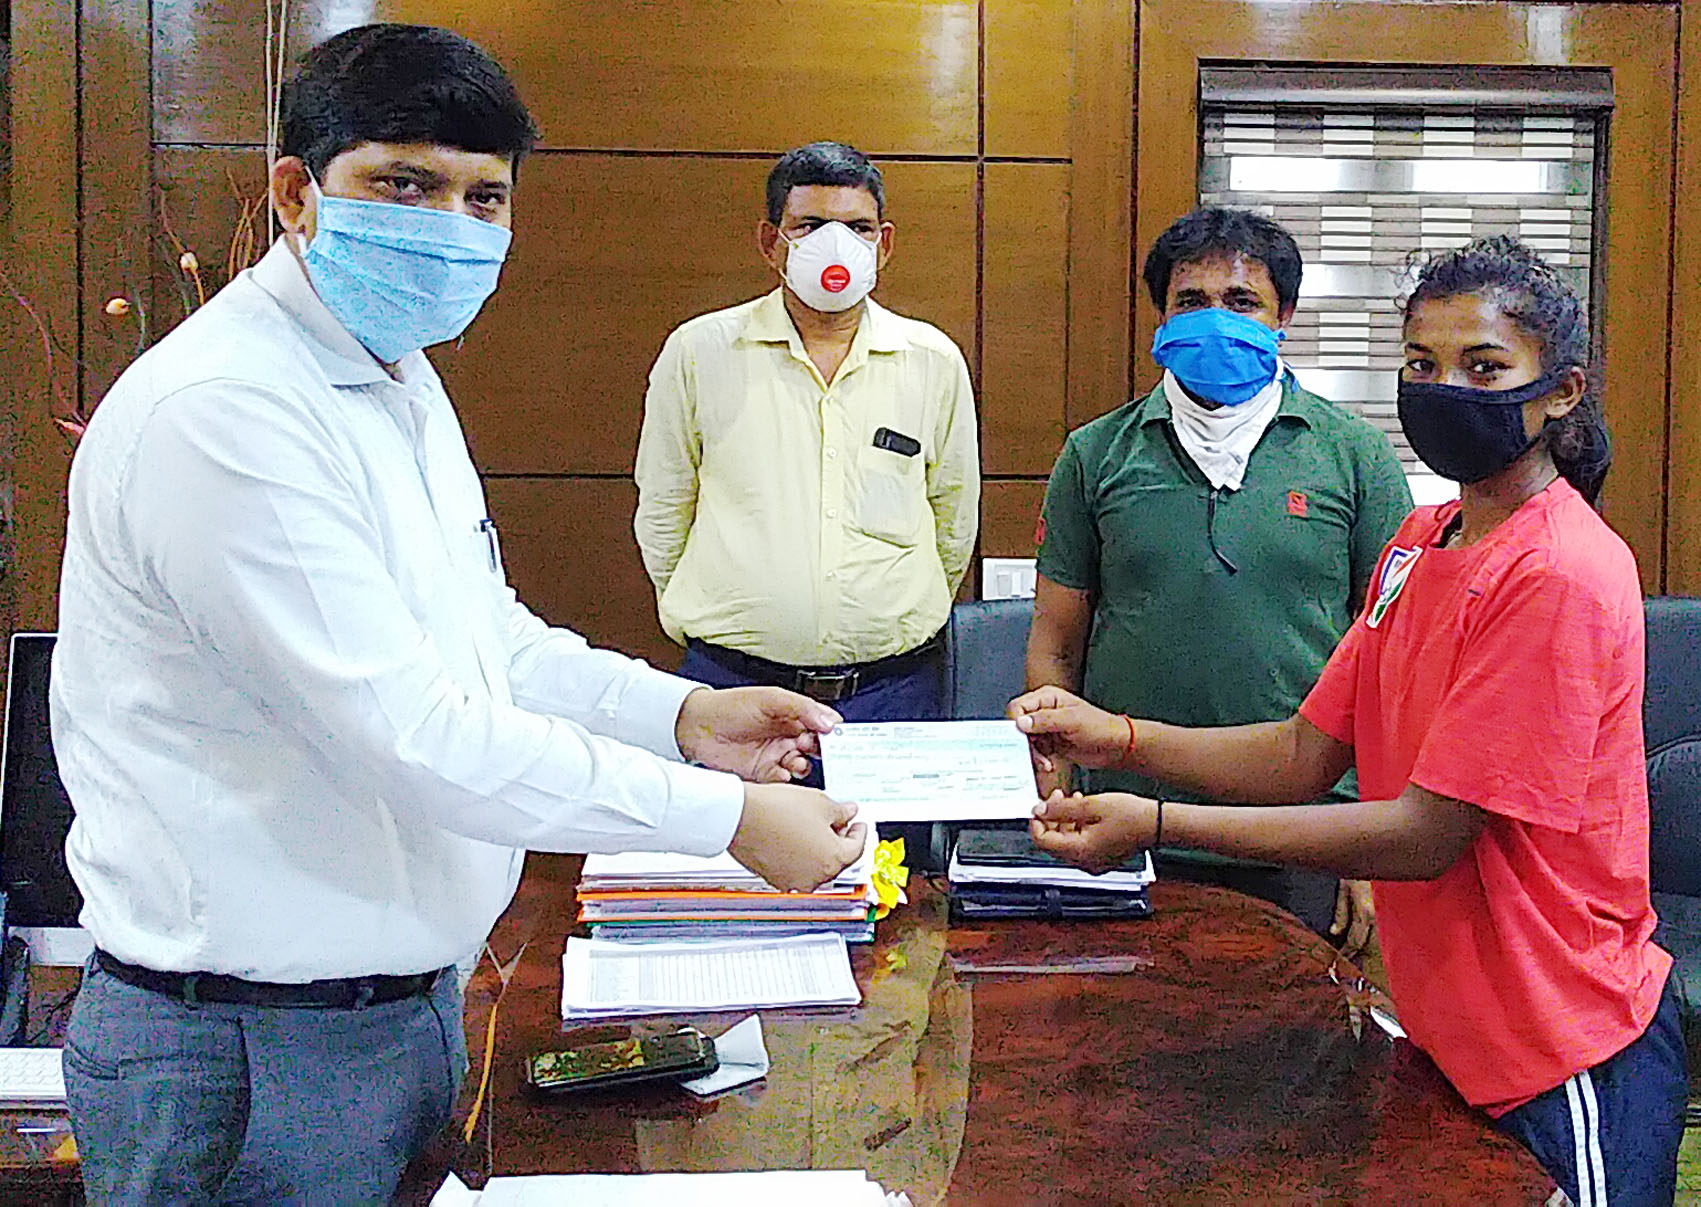 Dhanbad deputy commissioner Amit Kumar hands over a cheque for Rs 15,000 to Asha Kumari at his office on Sunday